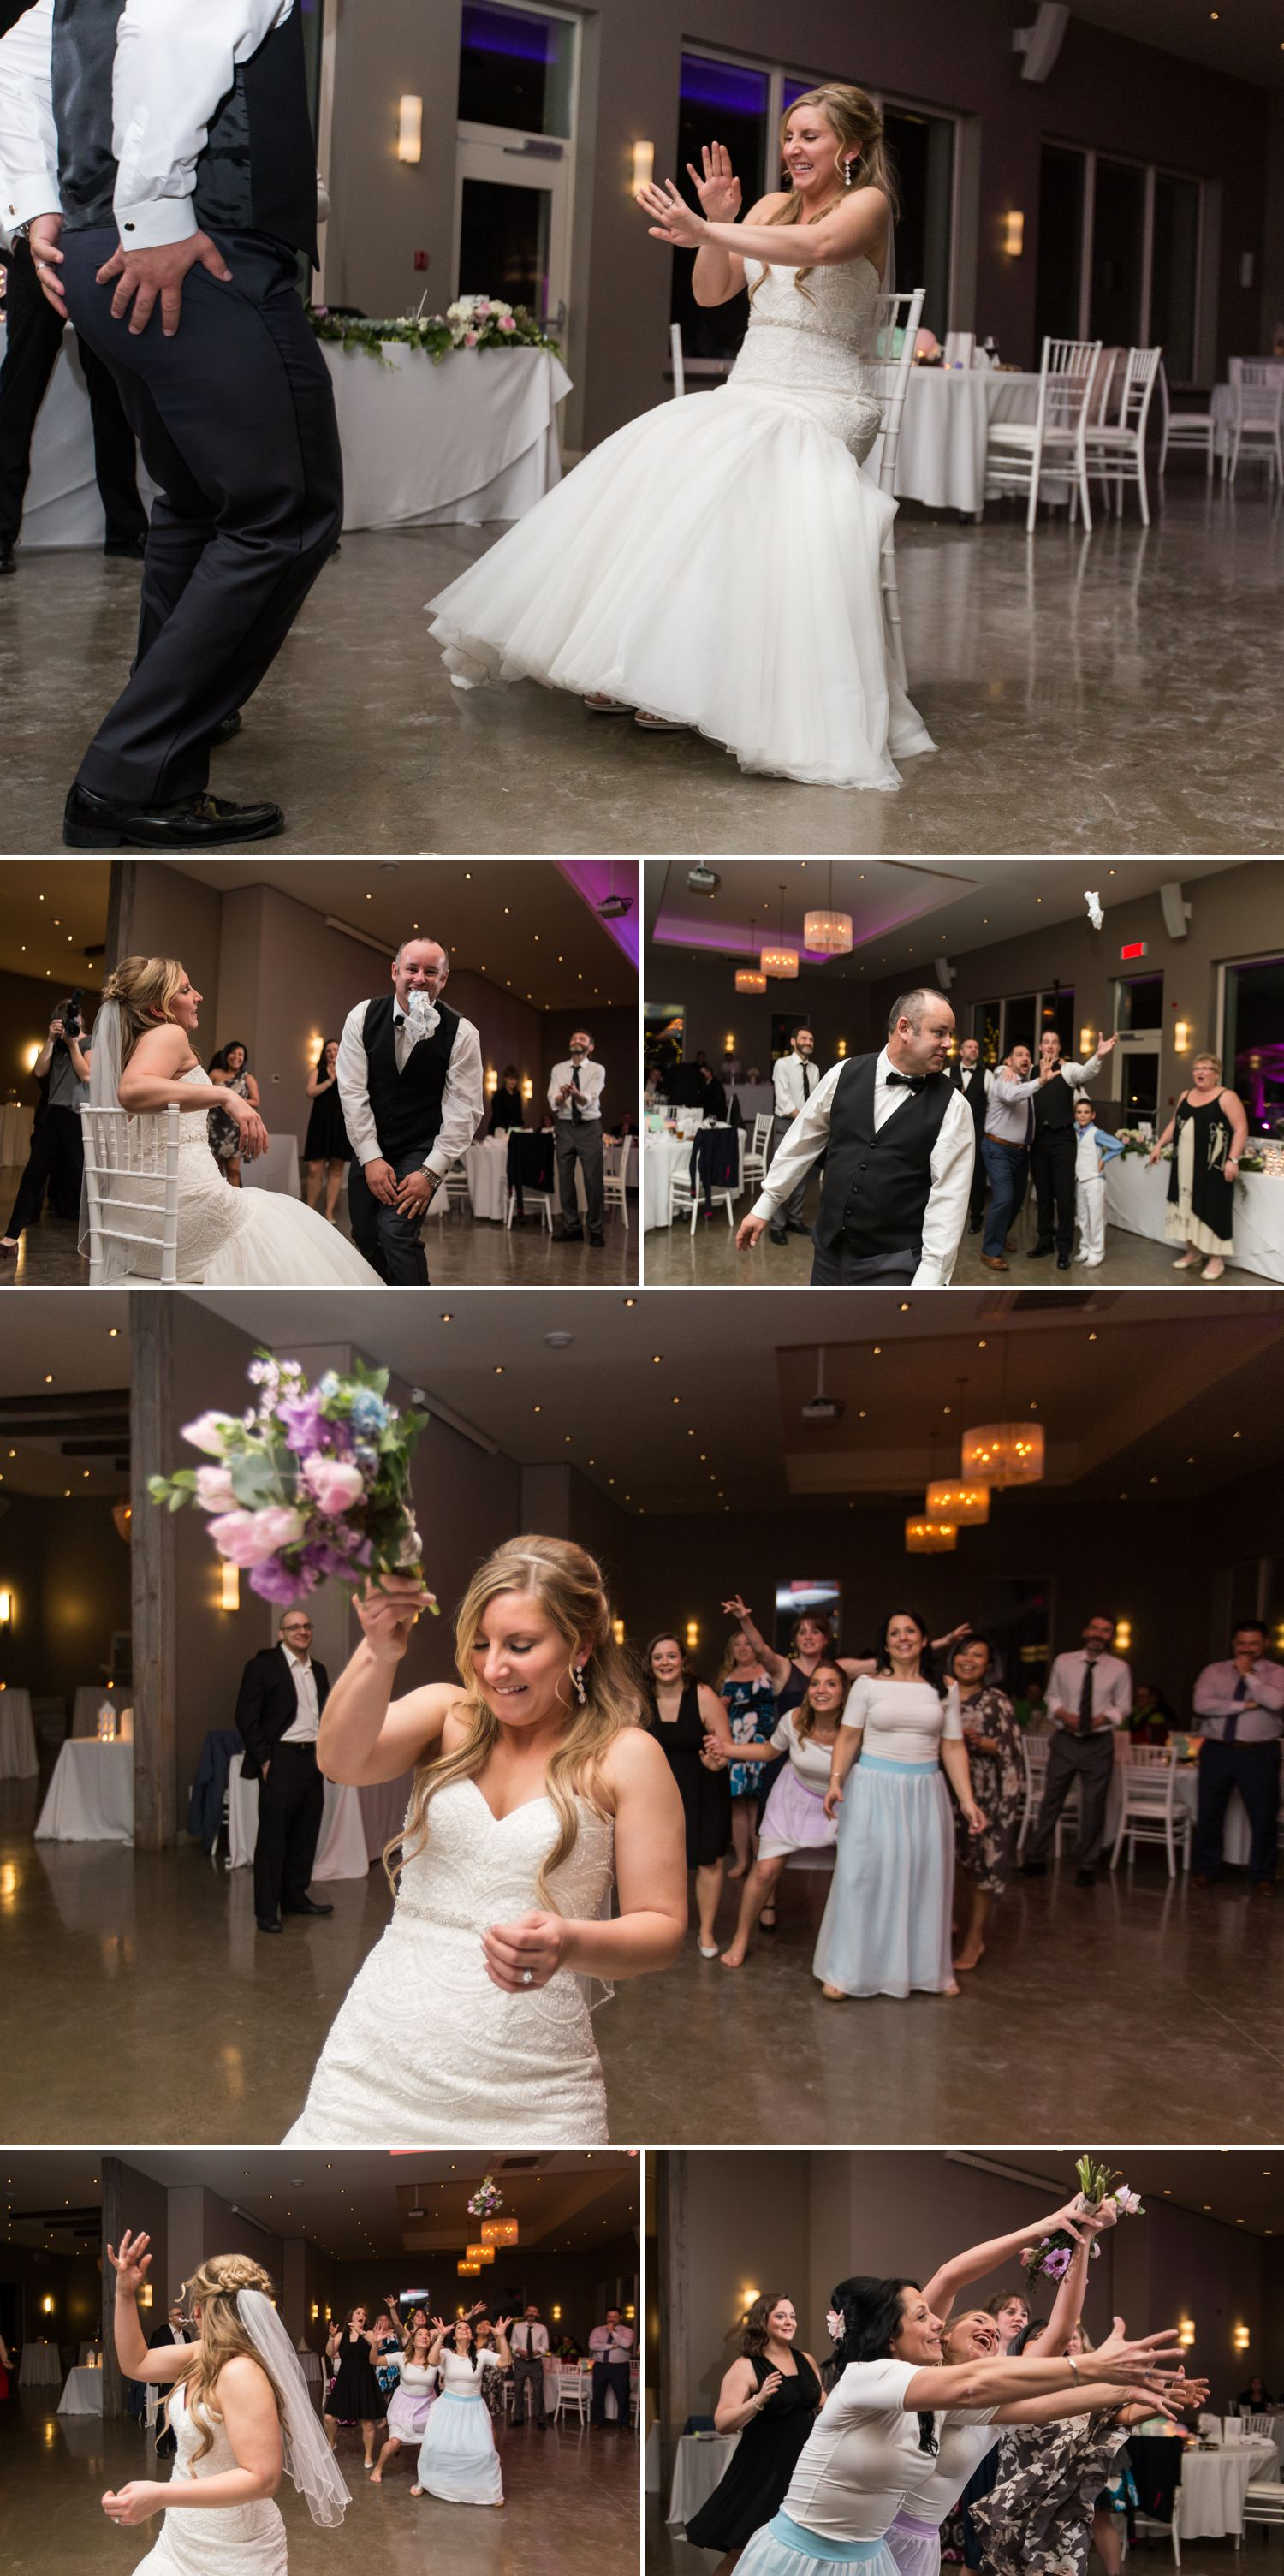 The bride and groom doing their bouquet and garter toss during their reception at Le Belvedere